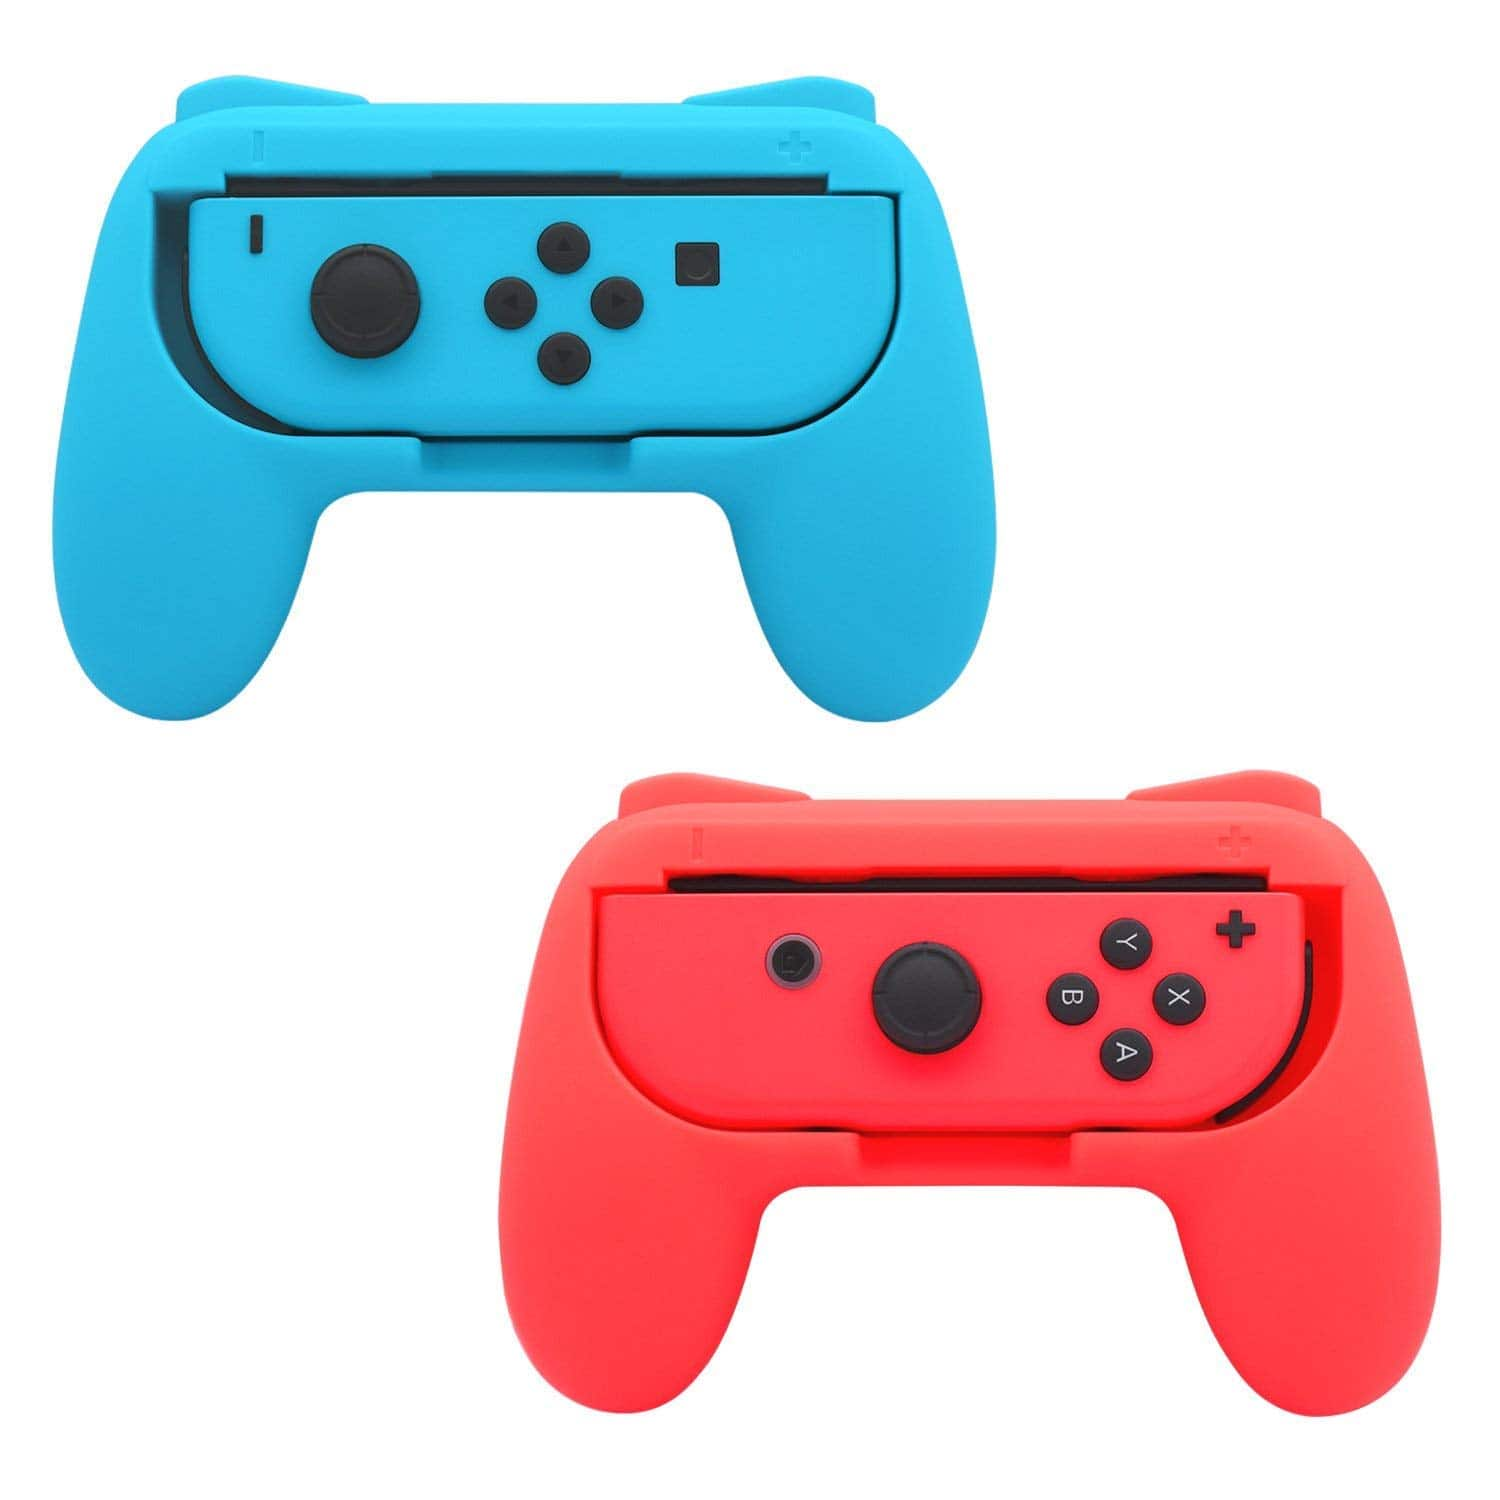 FastSnail Grips compatible with Nintendo Switch Joy-Cons (Red and Blue) $10.36 on Amazon FS w/ Prime